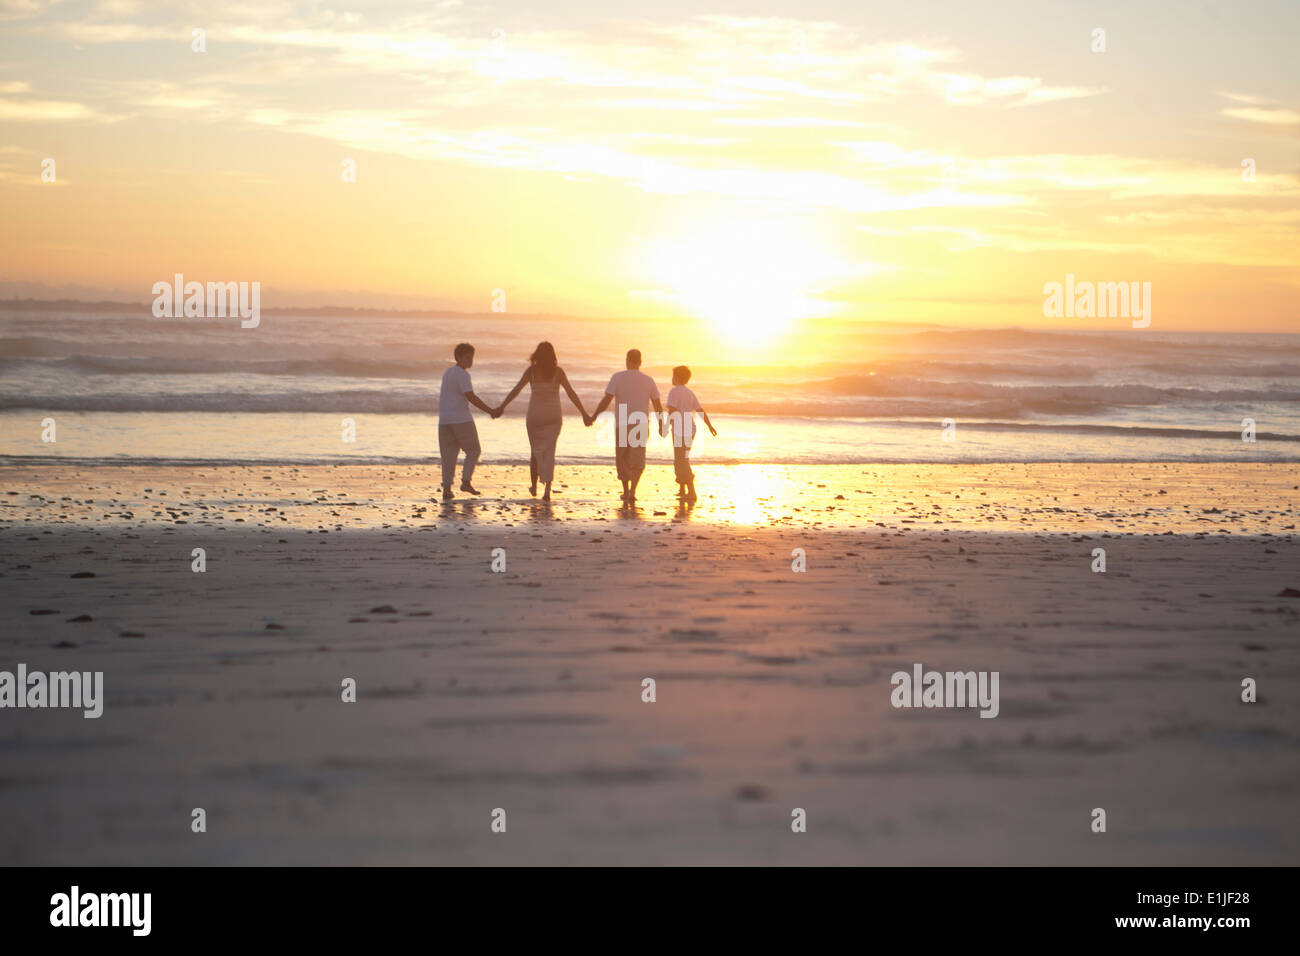 Family holding hands on beach, Cape Town, South Africa Stock Photo